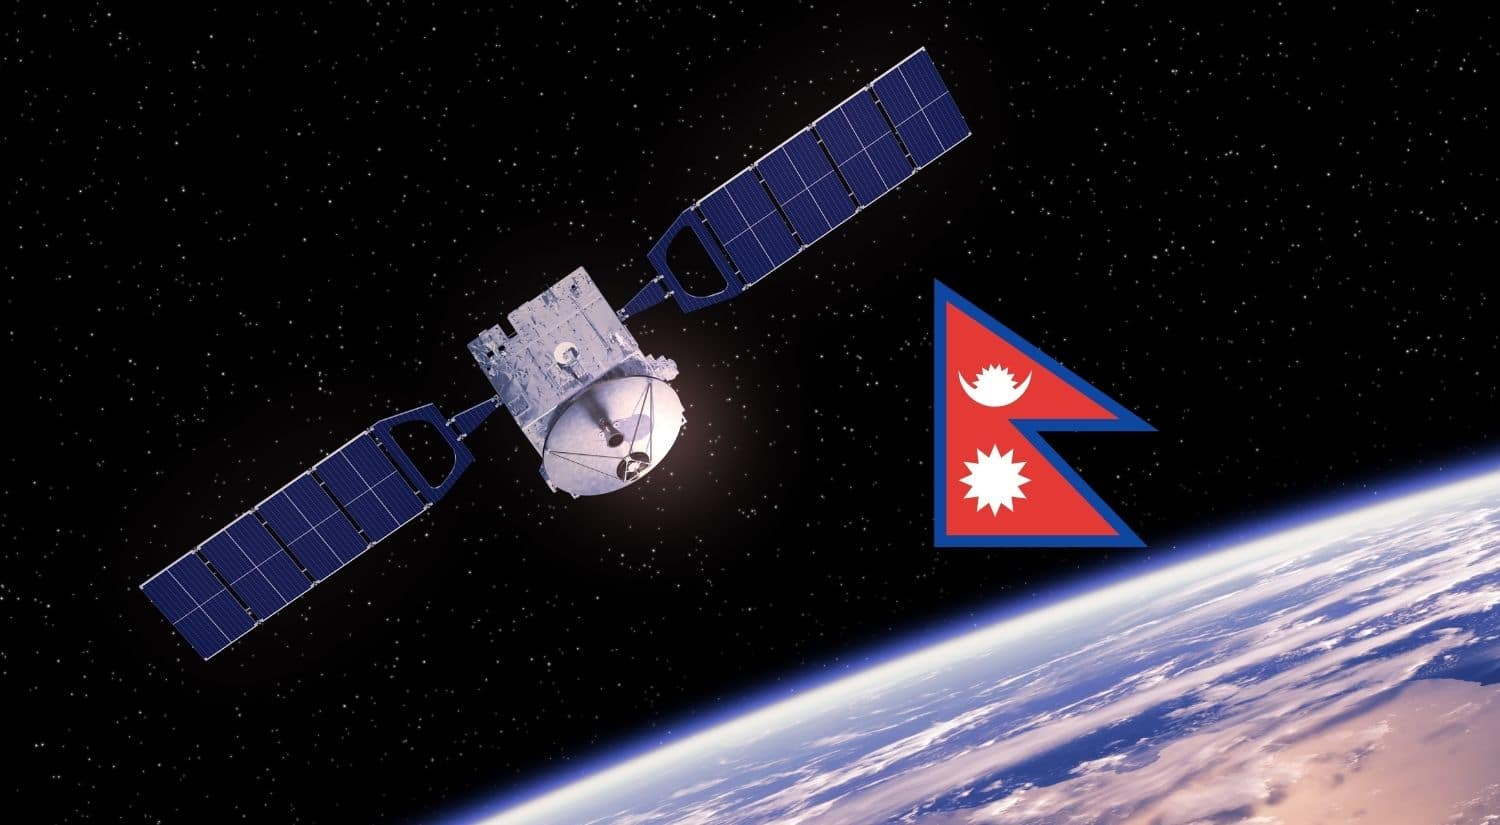 Nepal's own Satellite